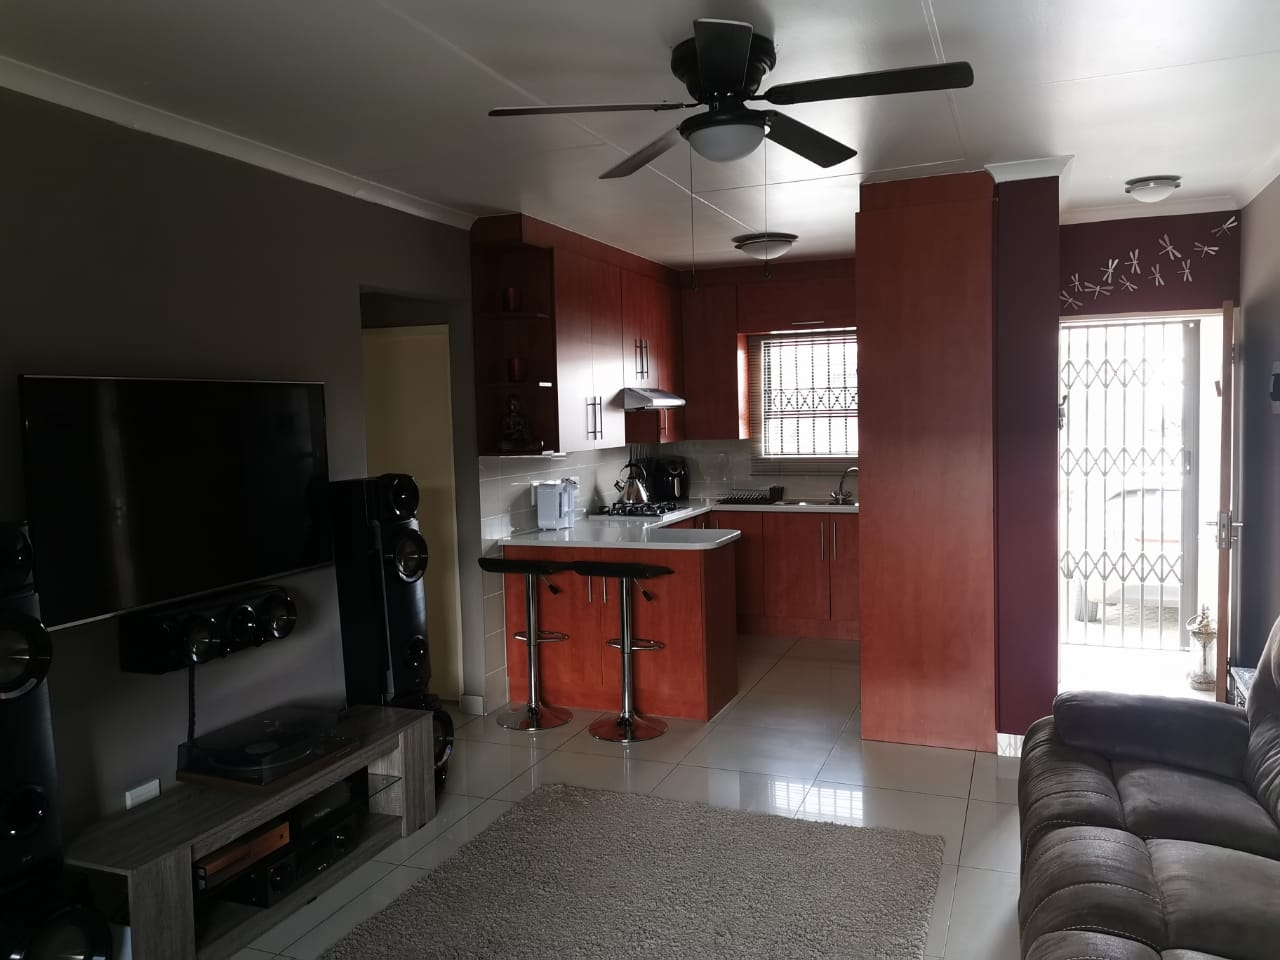 View from living area towards kitchen